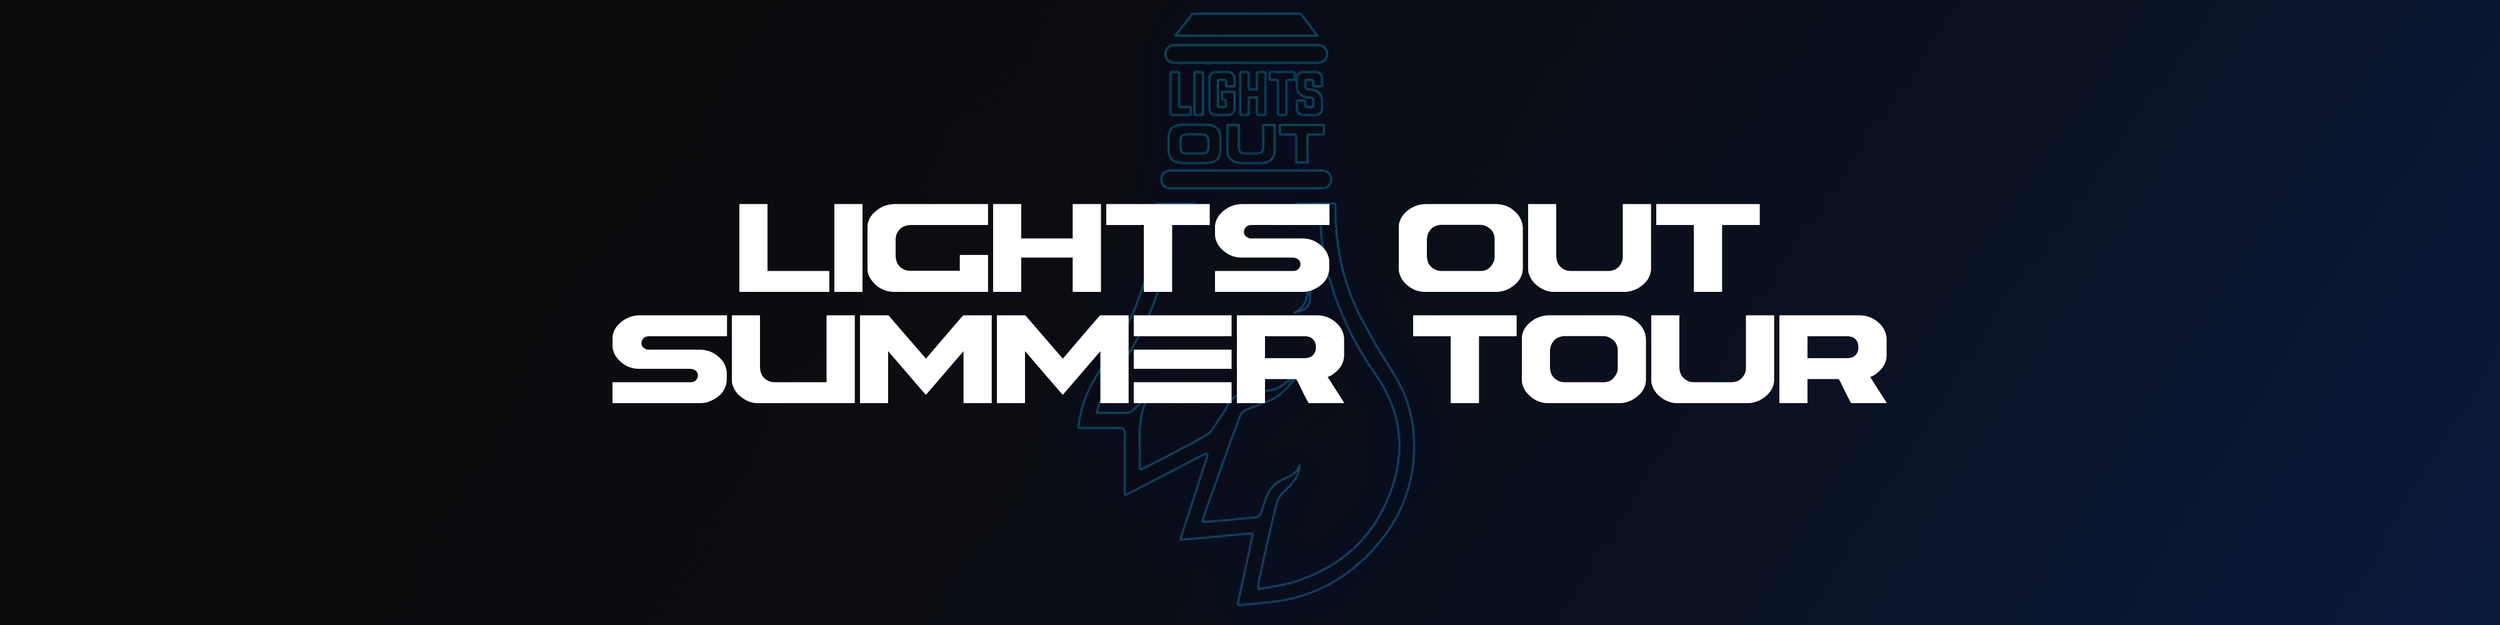 LIGHTS OUT SUMMER TOUR Banner.png